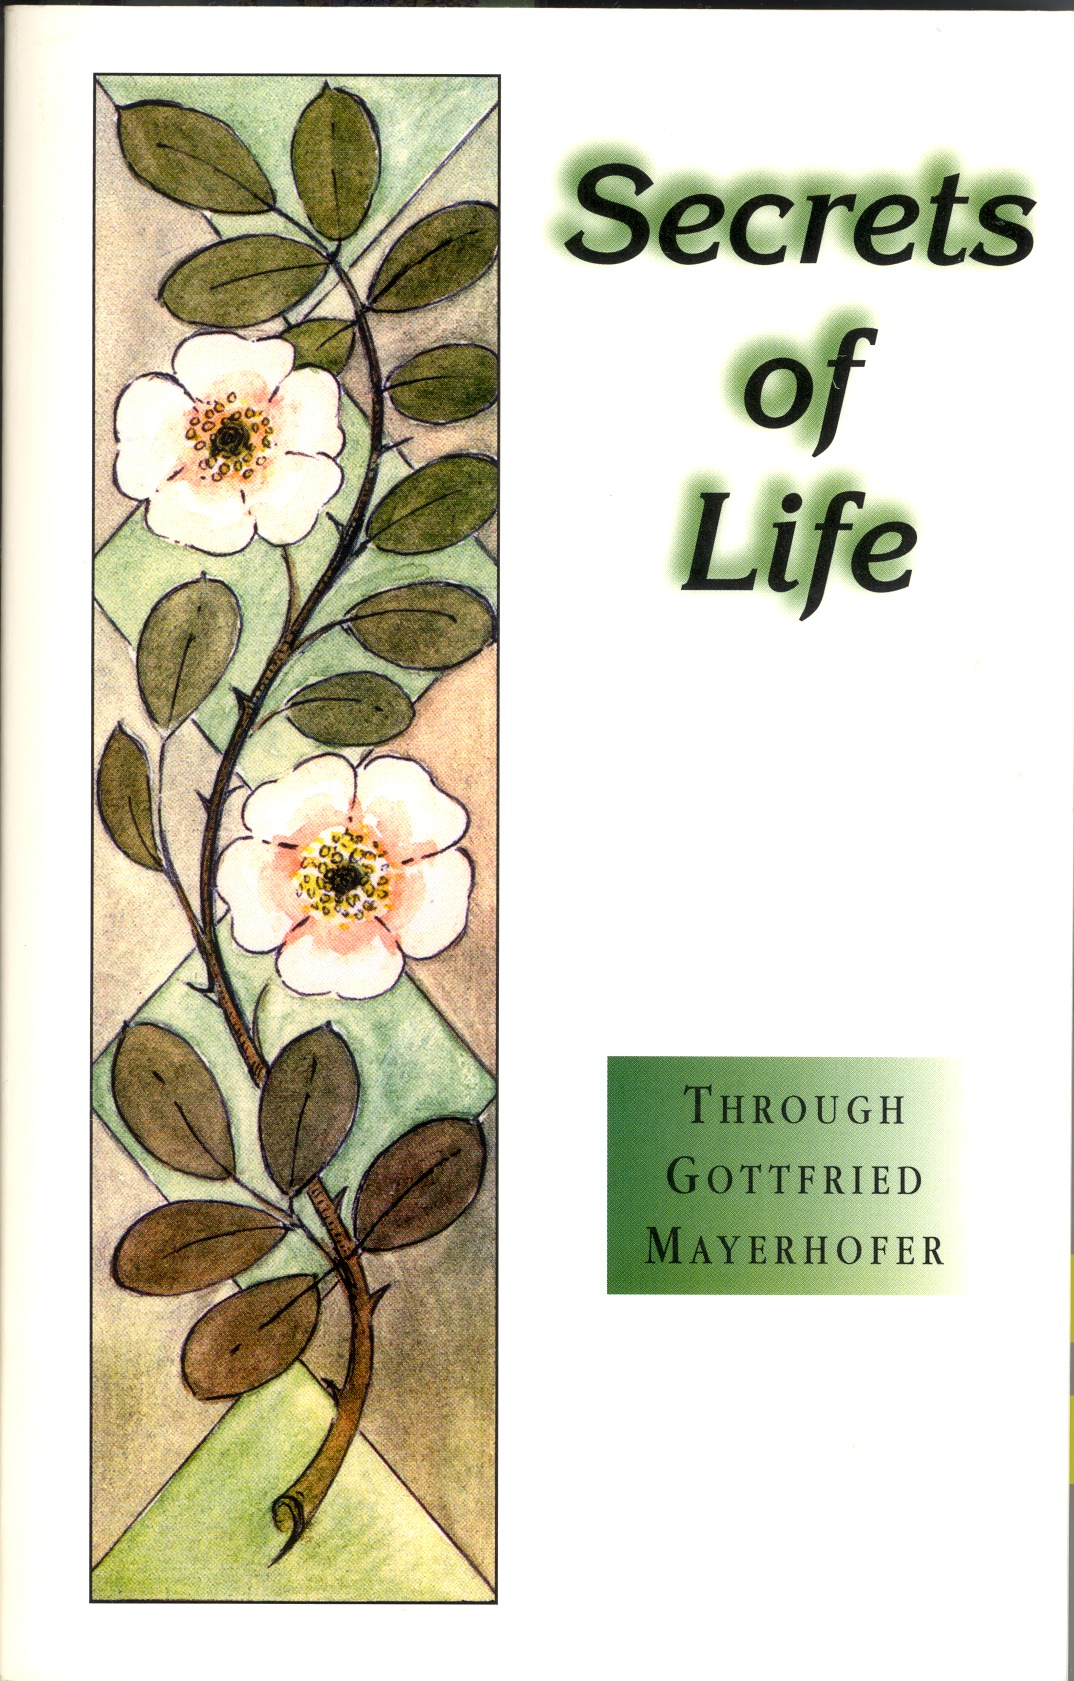 secrects of life, gottfried mayerhofer